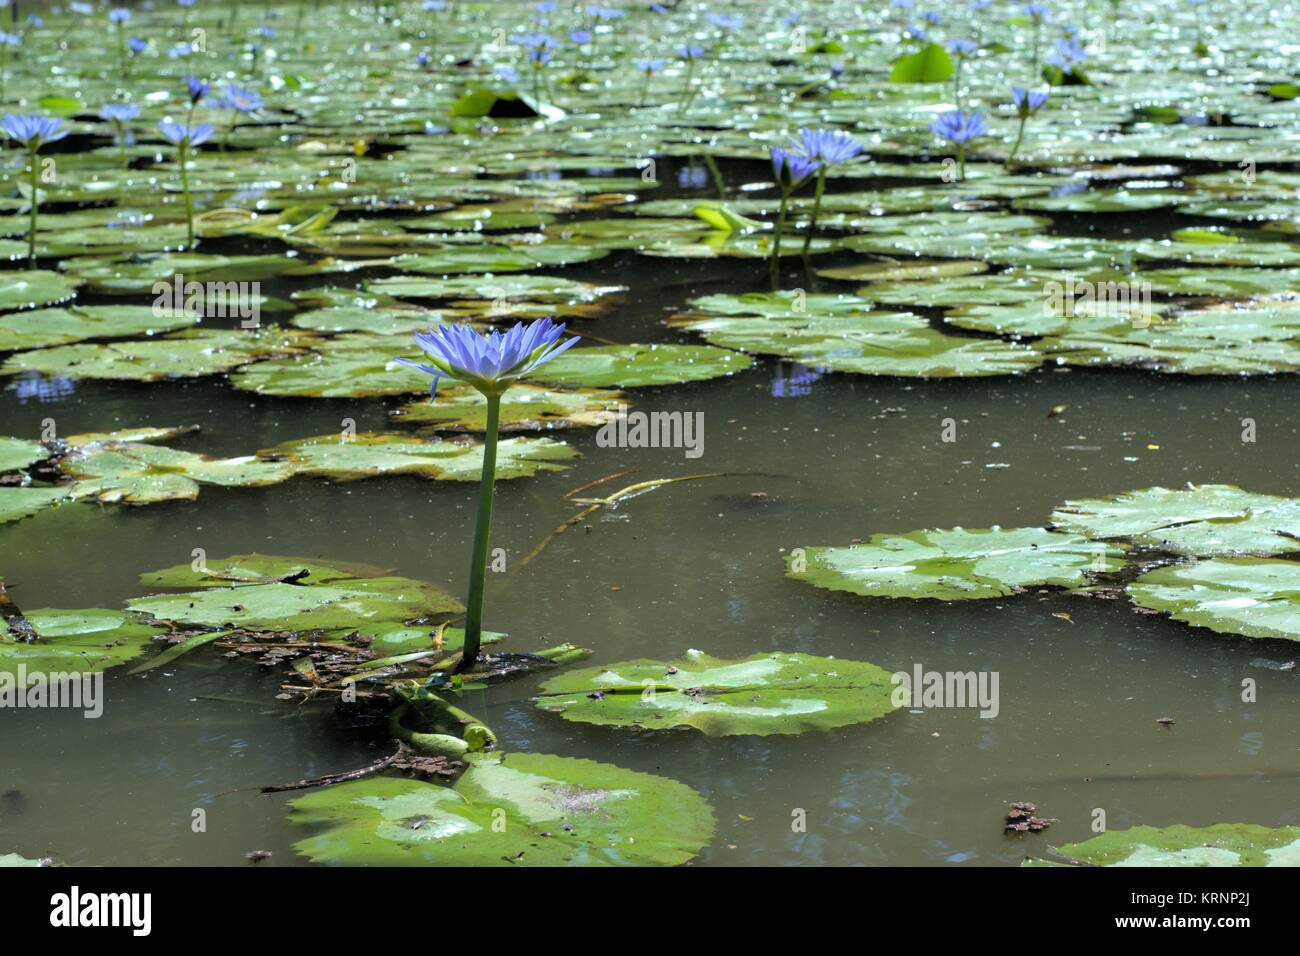 Purple waterlily flowers in freshwater pond. Waterlily flowers are native to the temperate and tropical climates. - Stock Image